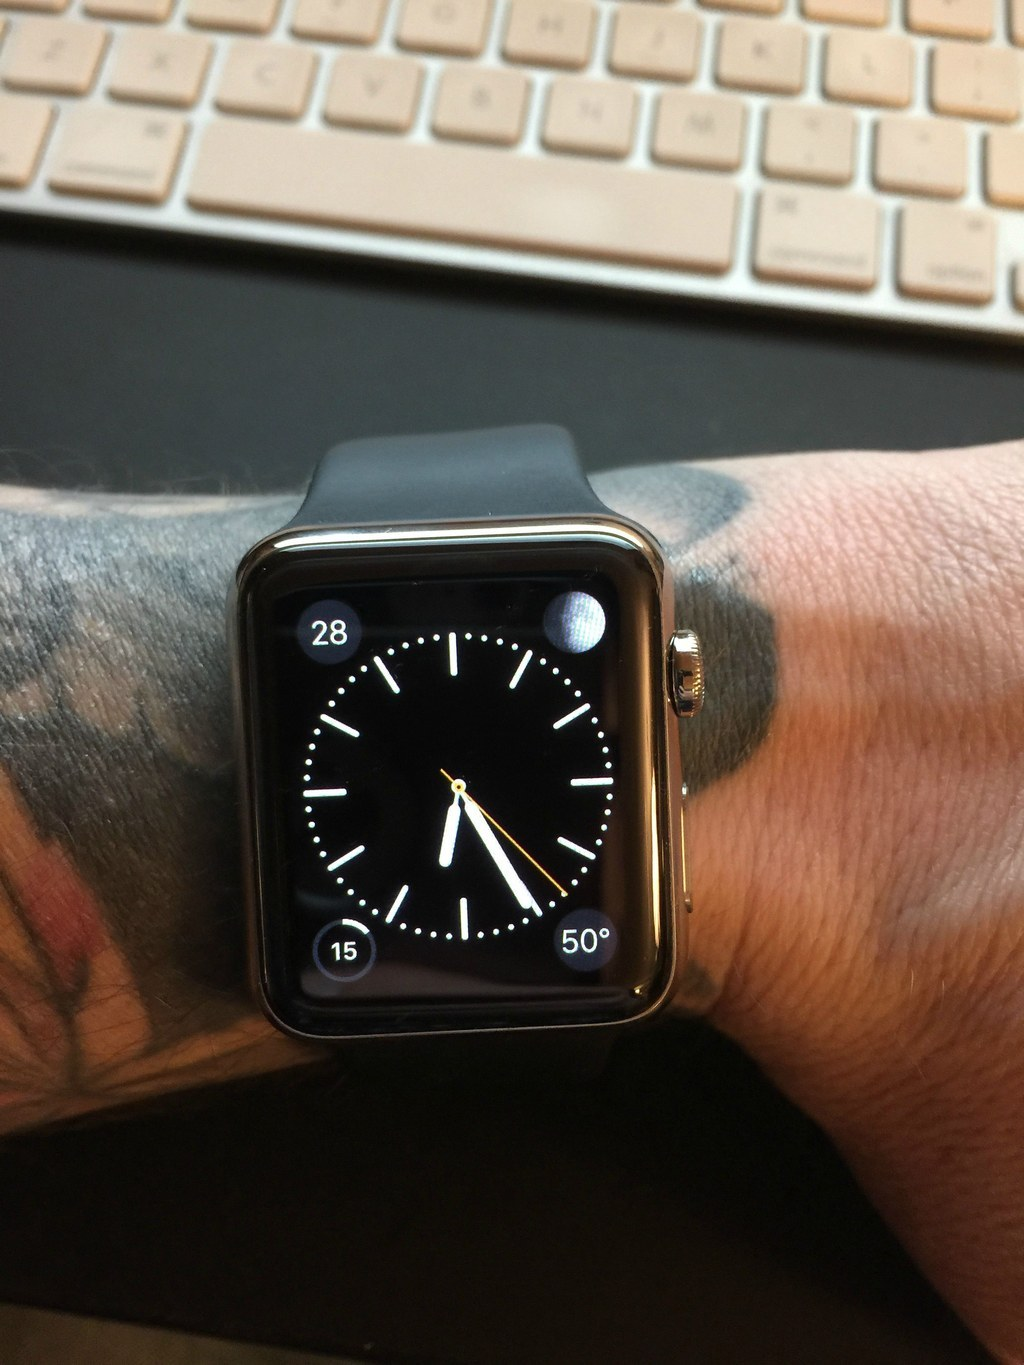 Tattoogate Is Real: Apple Says Tattoos Can Confuse Apple Watch